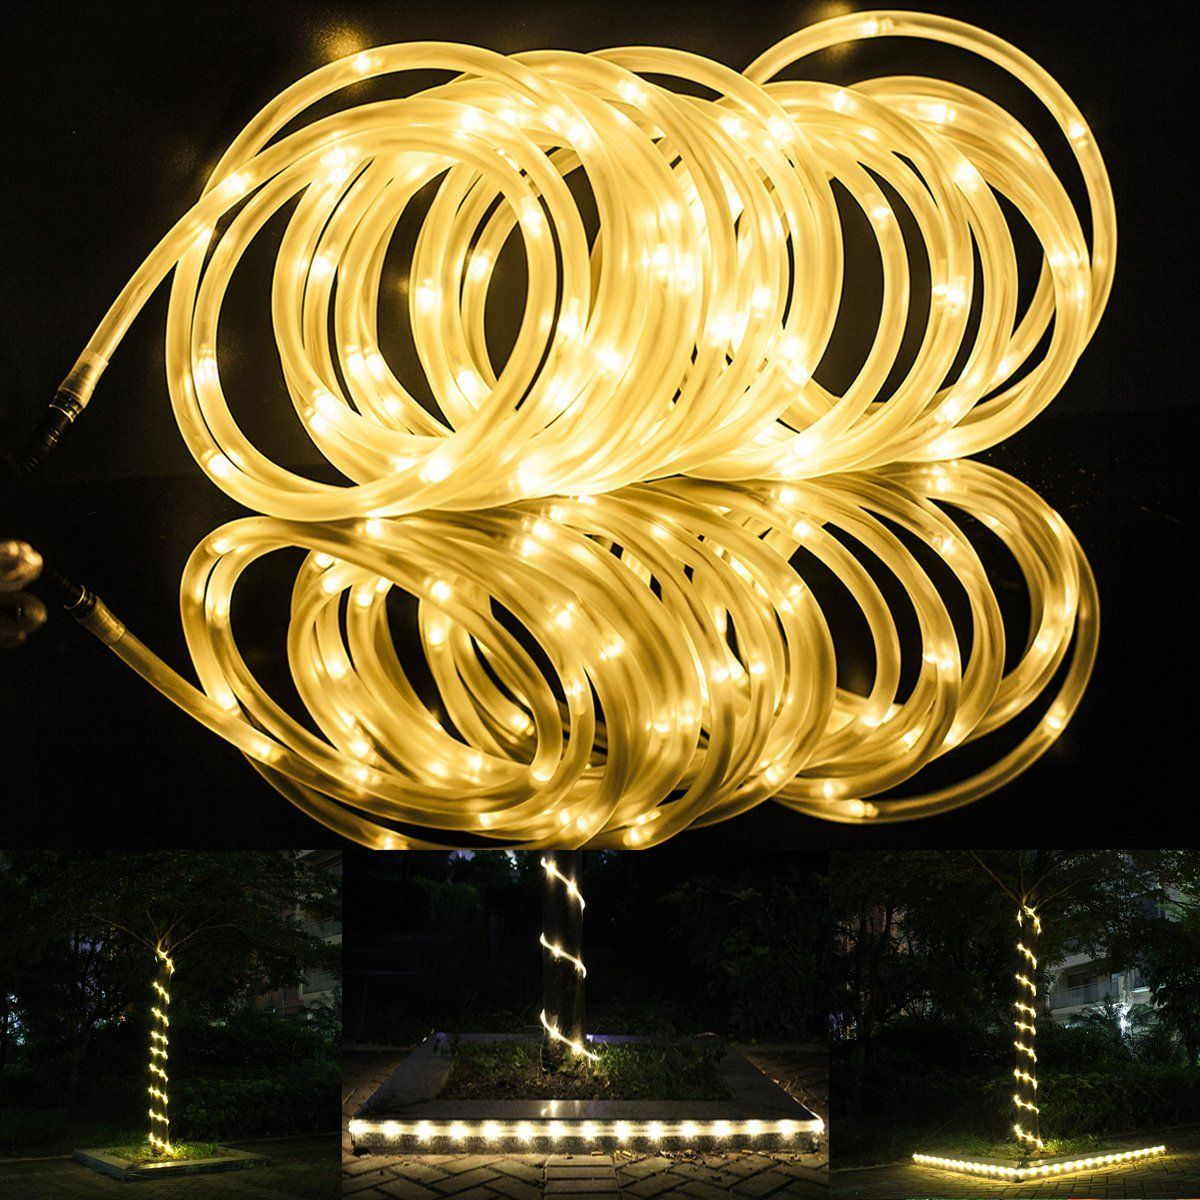 White Rope Lights Outdoor Lte 50 leds solar rope lights total length of 23ft warm white lte 50 leds solar rope lights total length of 23ft warm white outdoor workwithnaturefo